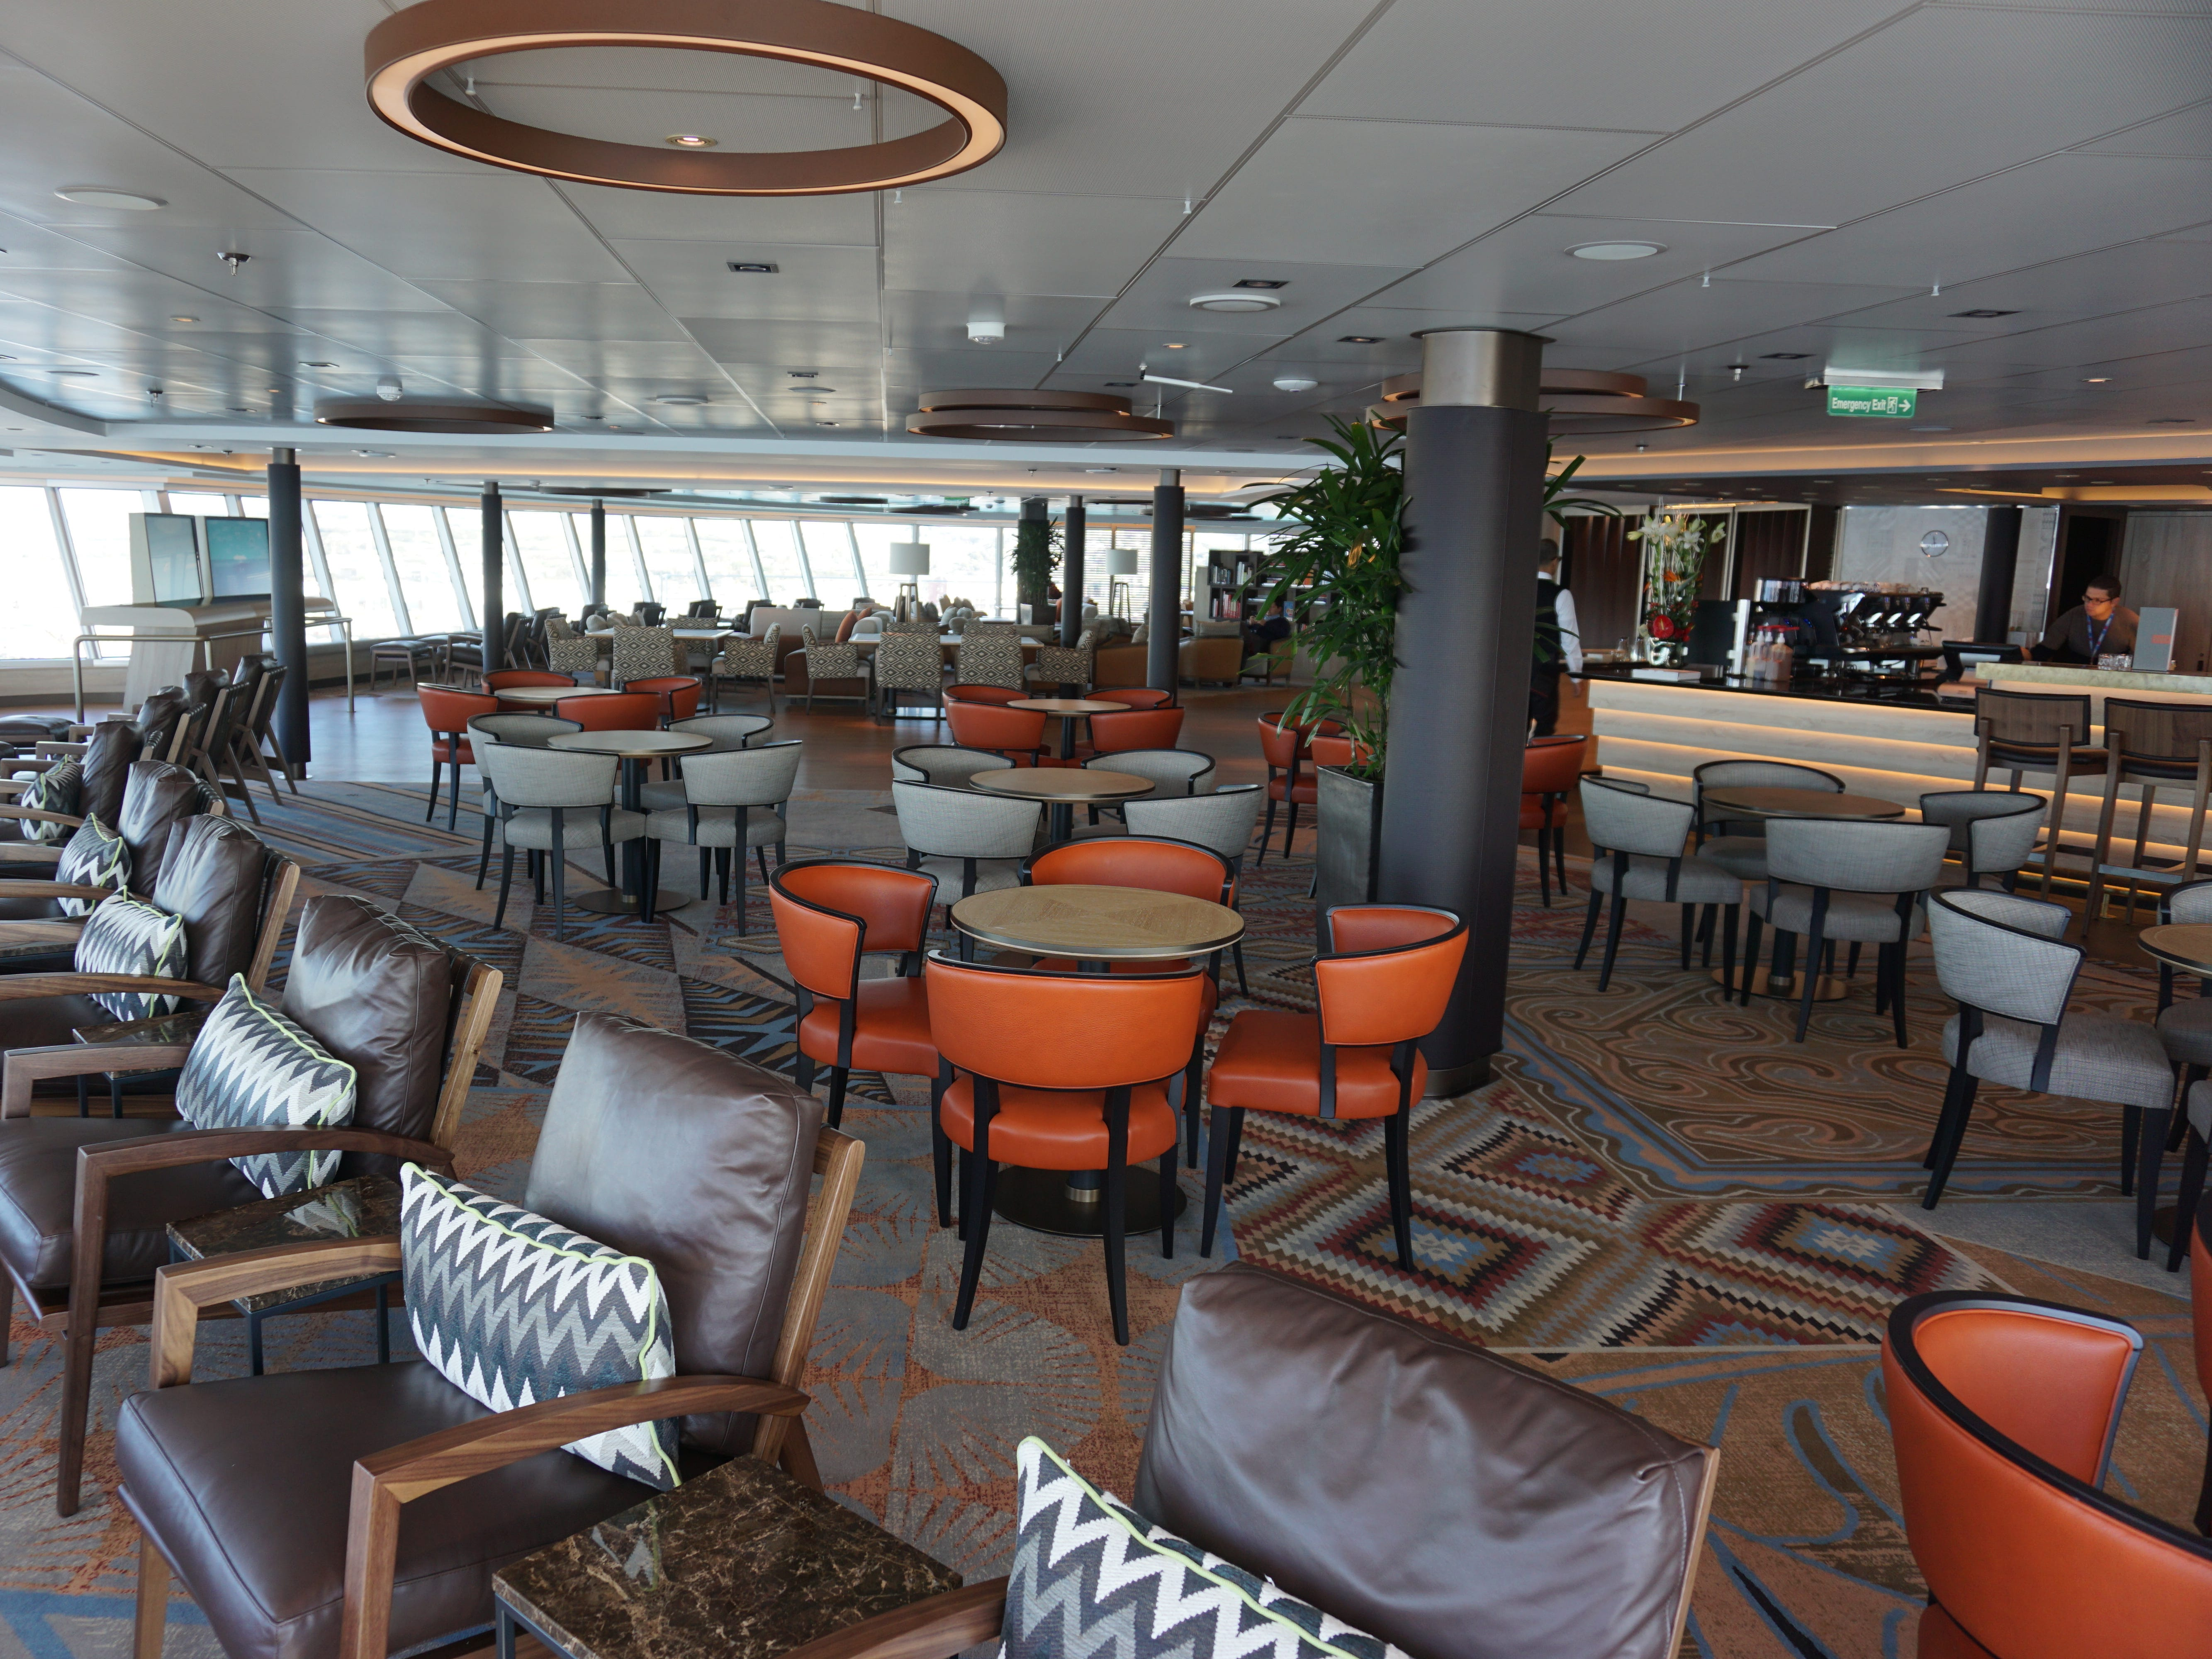 The Nieuw Statendam's loftiest perch is the 269-seat Crow's Nest/Explorations Central and Cafe situated at the forward end of Deck 12, offering drinks and specialty coffees for purchase, along with views from an 11-story vantage.